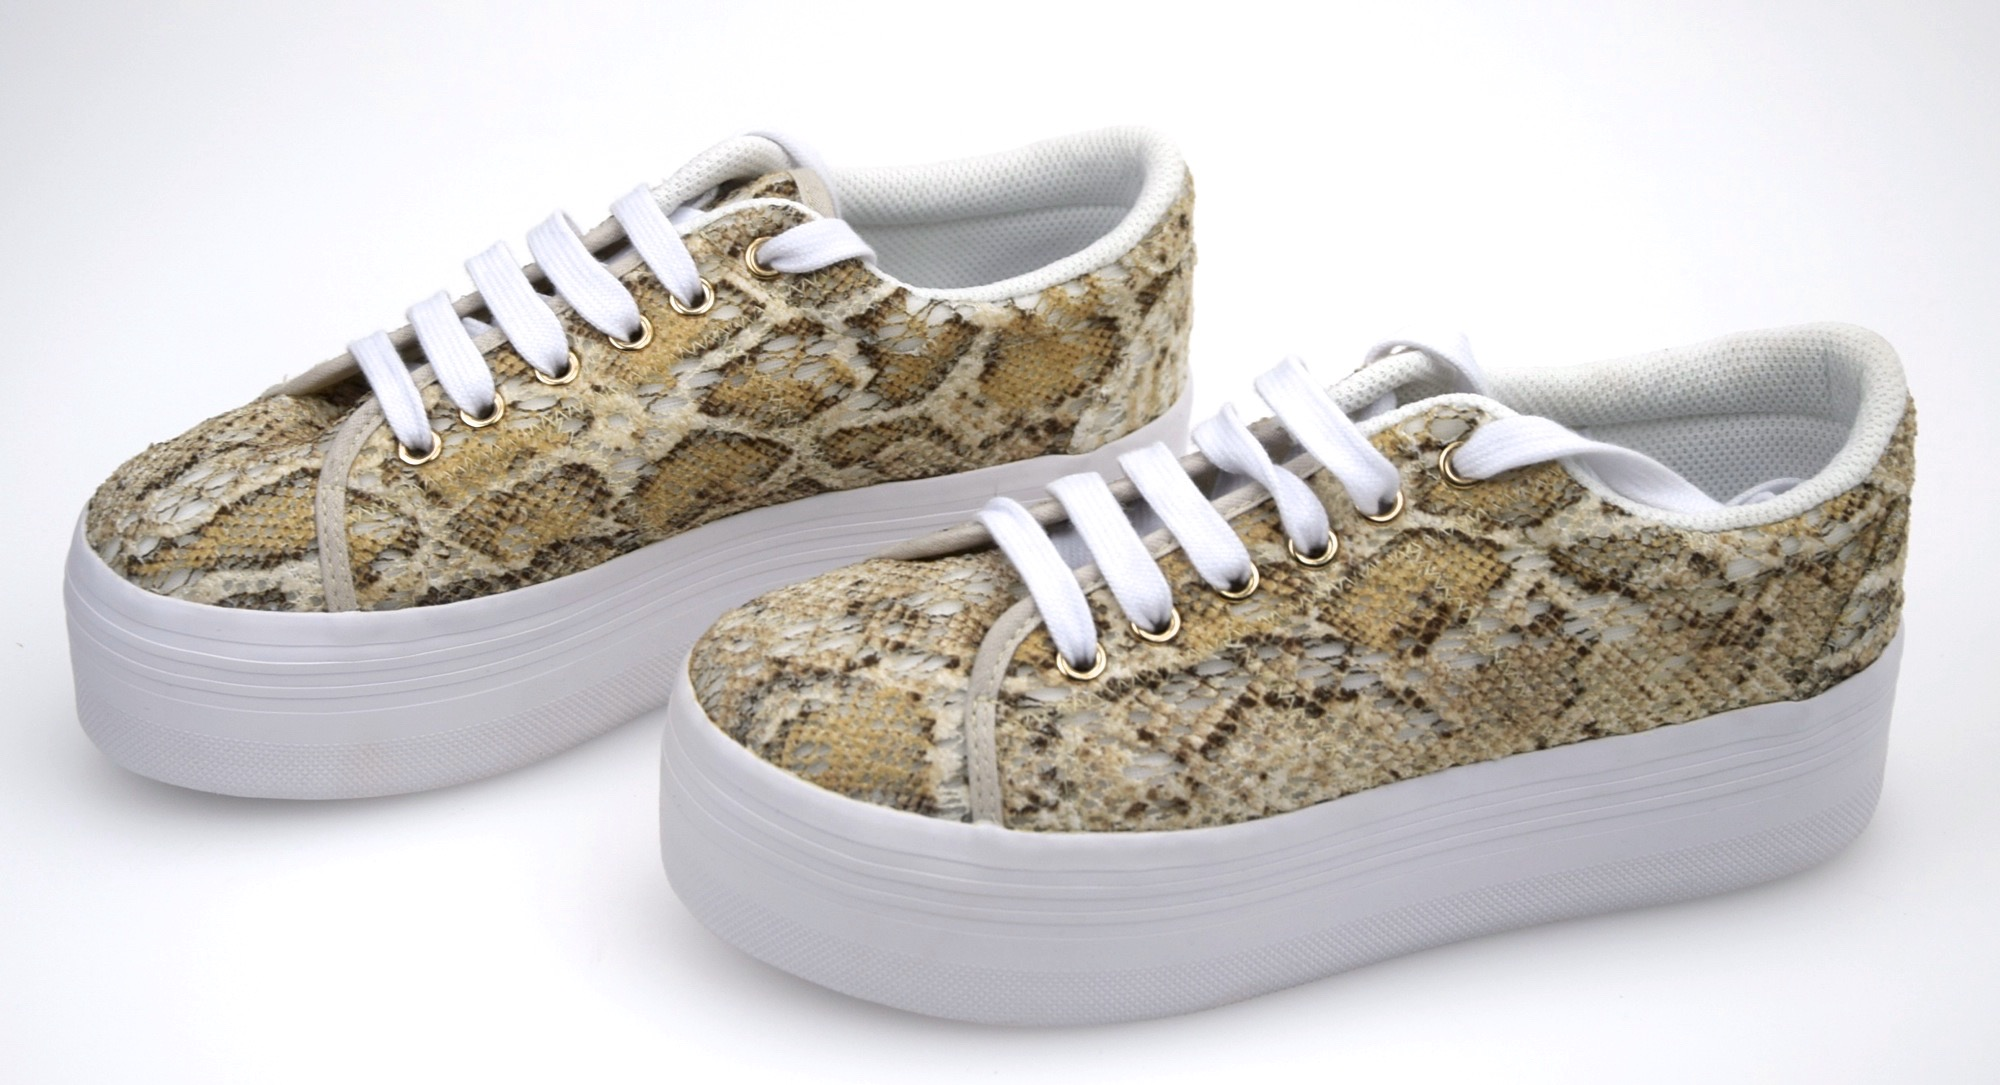 JEFFREY CAMPBELL CODE Damenschuhe SNEAKER Schuhe WITH WEDGE CASUAL CODE CAMPBELL ZOMG LACE PYTHON 432fd3